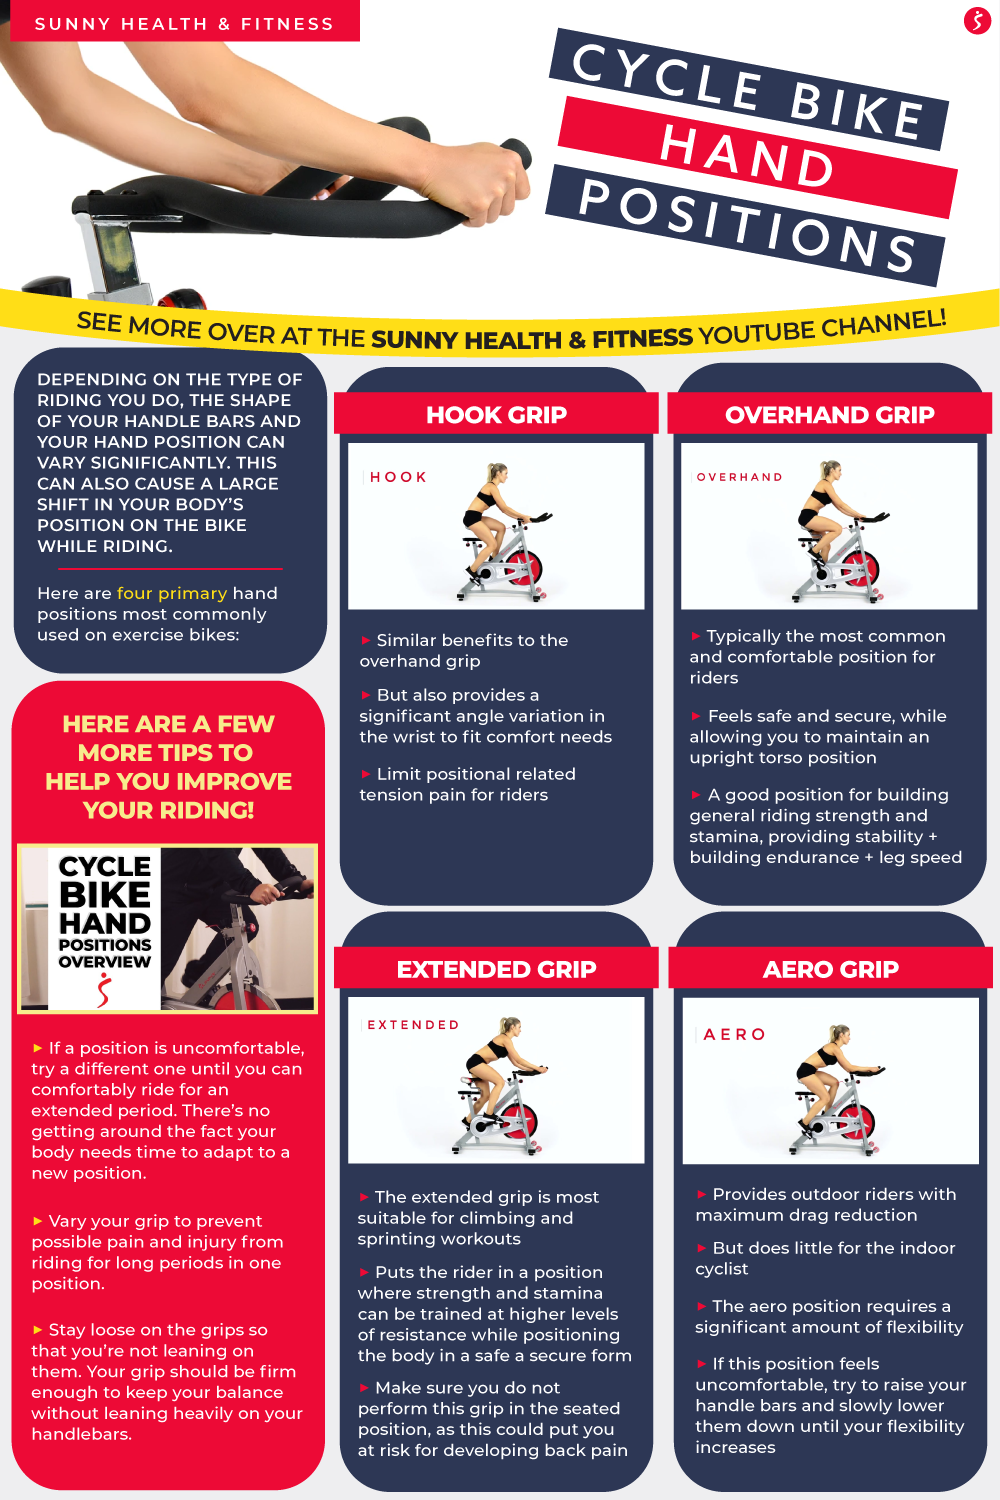 Cycle Bike Hand Positions Infographic